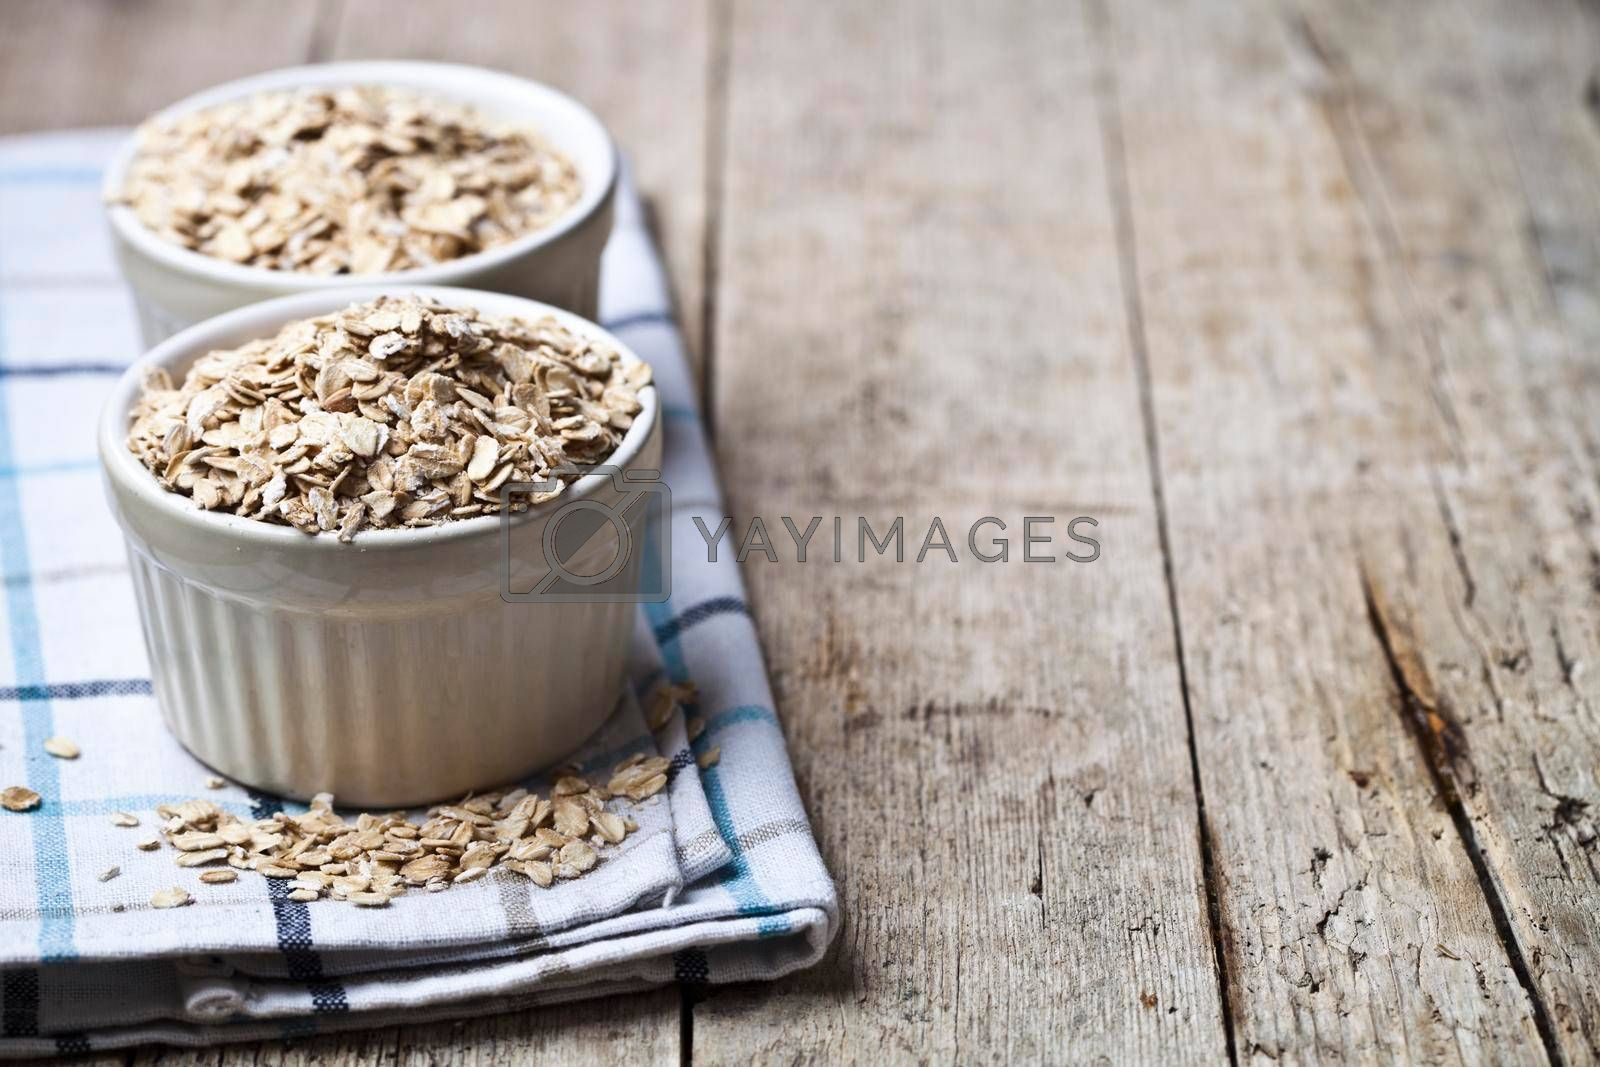 Oat flakes in ceramic bowls on linen napkin, golden wheat ears on rustic wooden background. Healthy lifestyle, healthy eating concept.